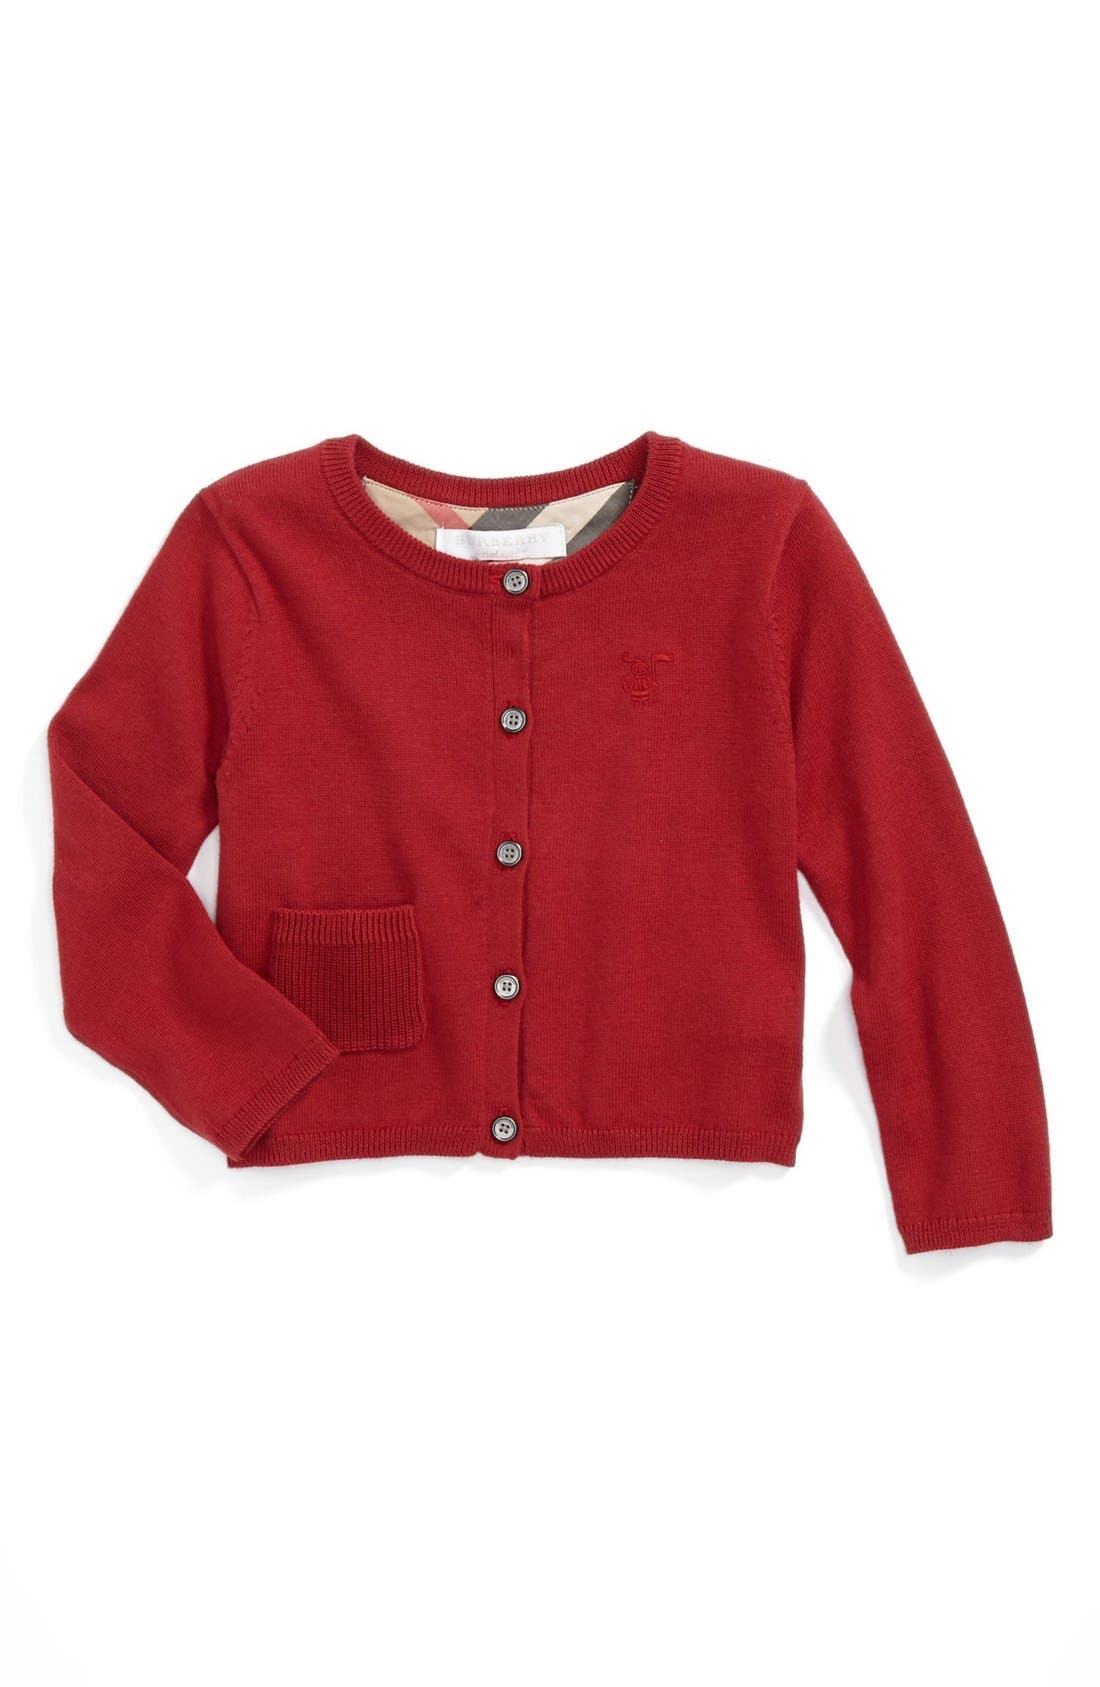 Alternate Image 1 Selected - Burberry 'Mini Kiki' Cardigan (Toddler Girls)